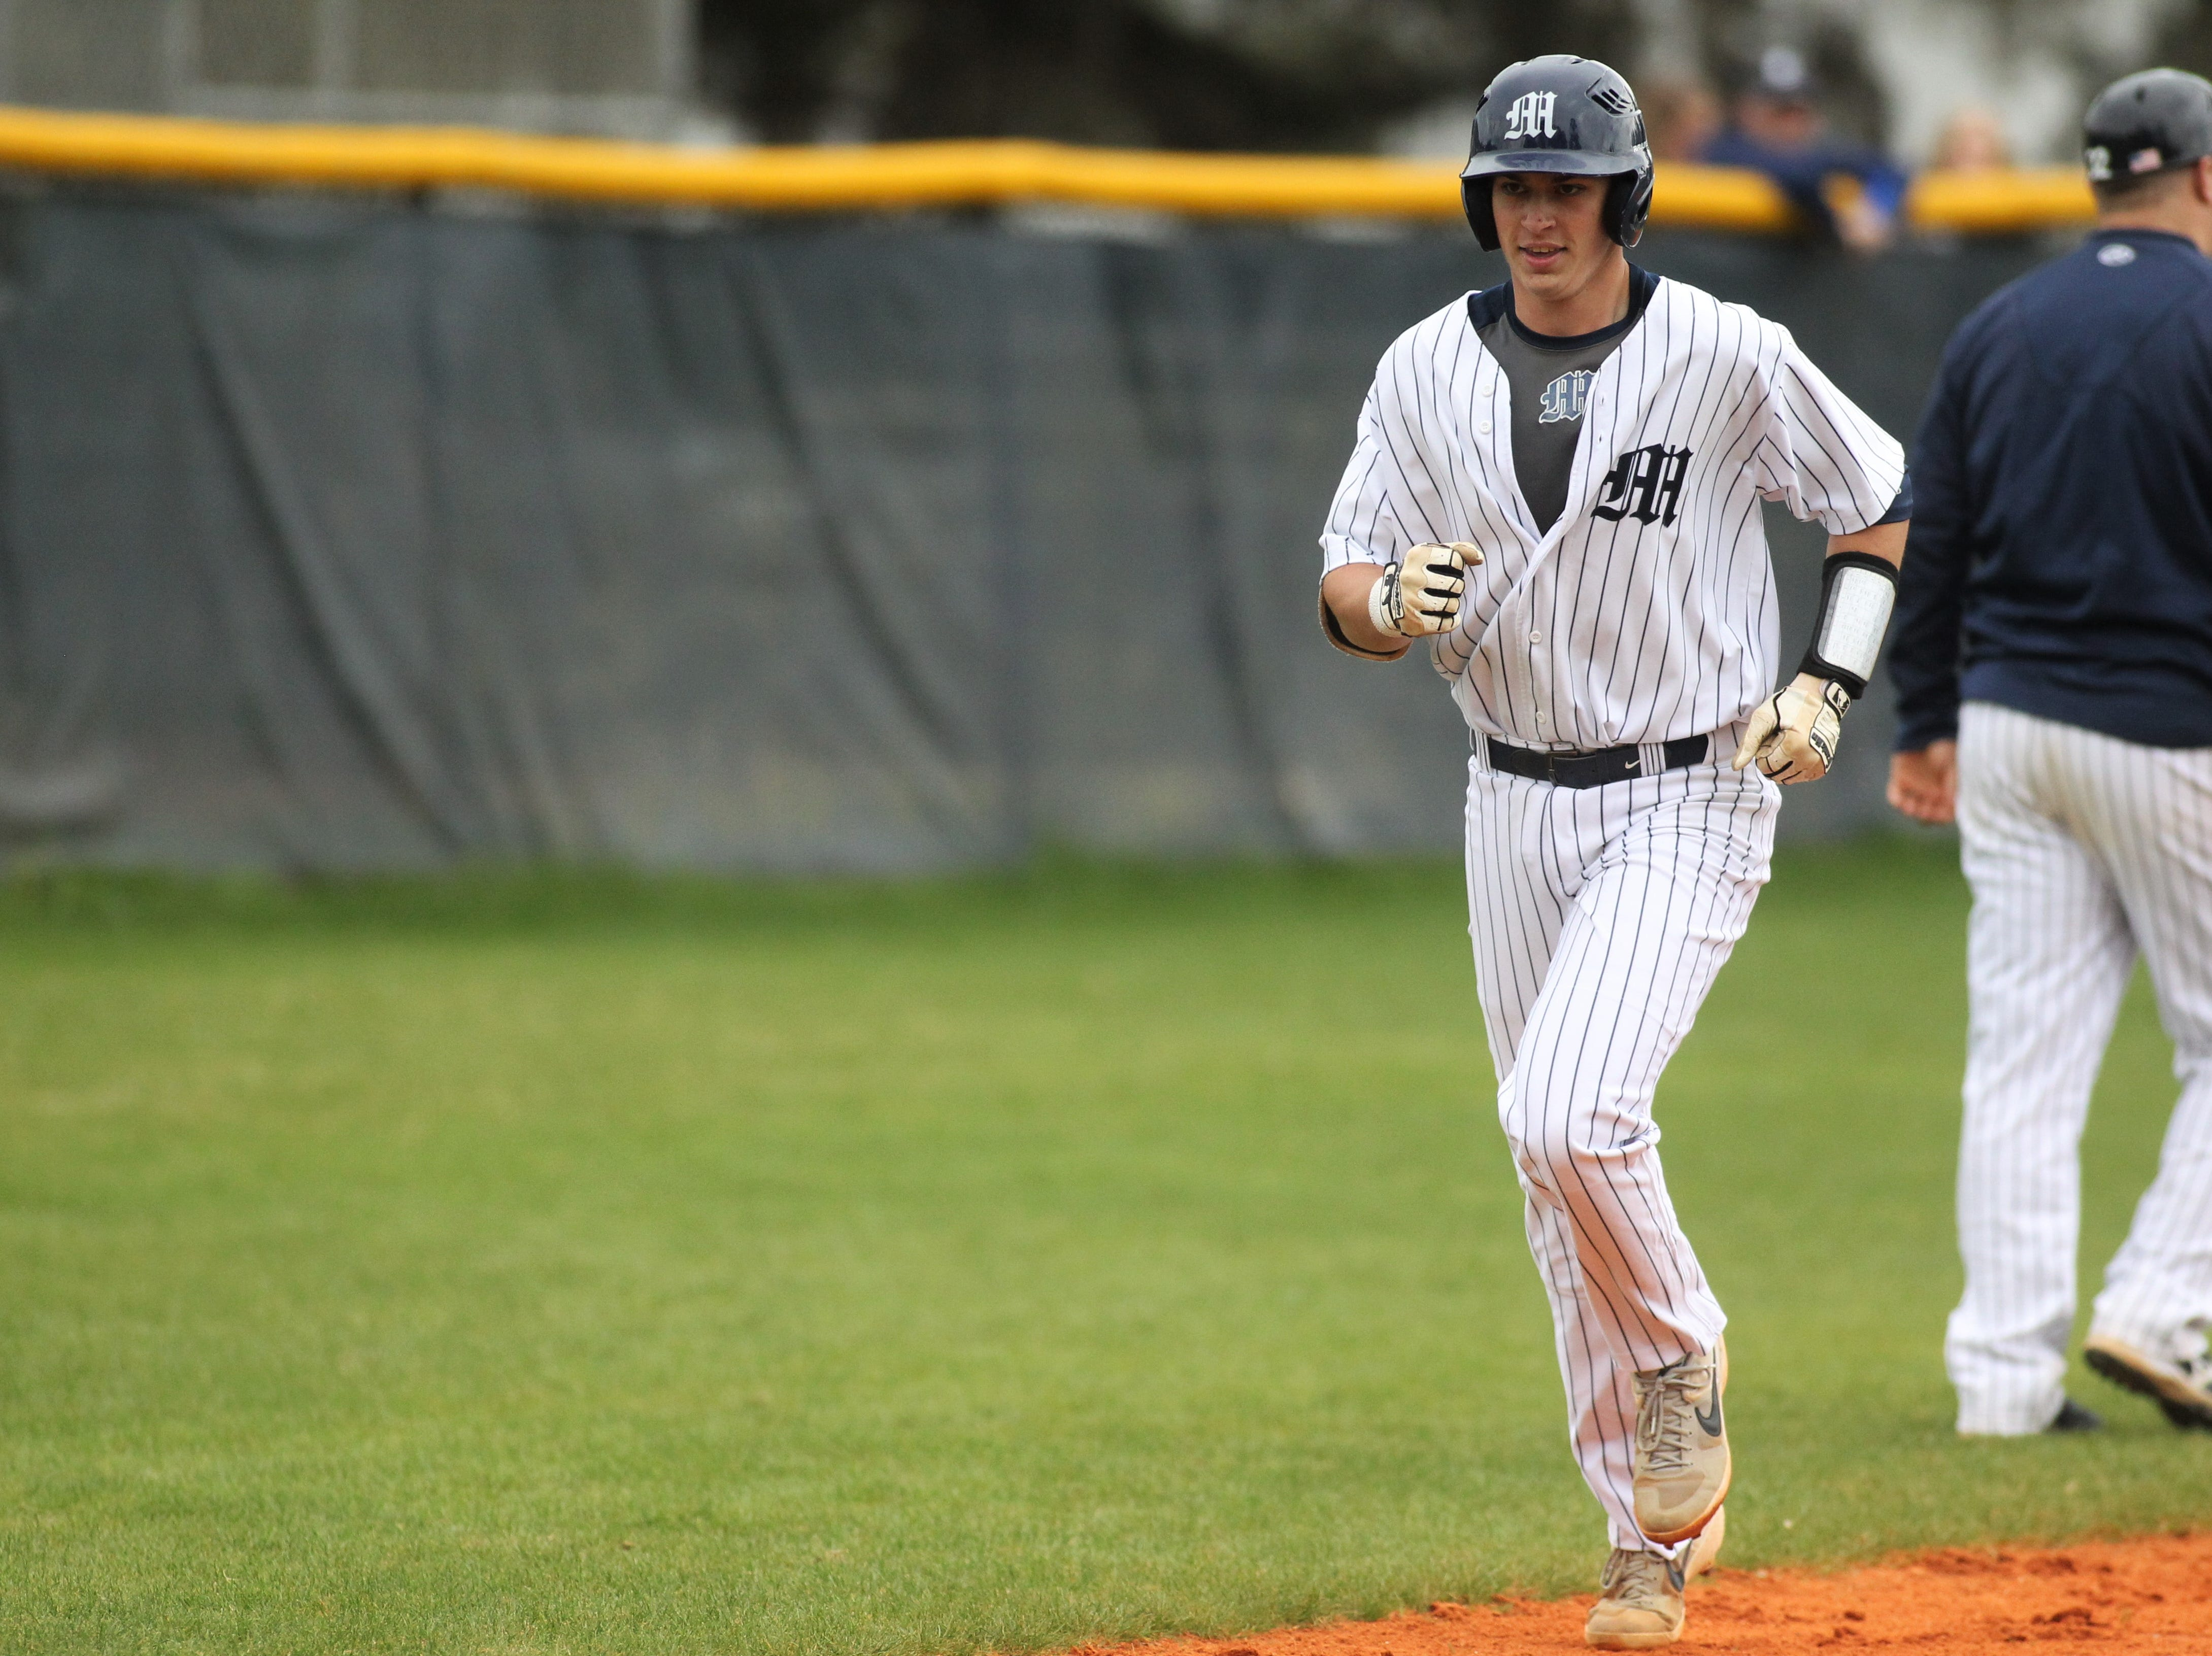 Maclay senior Jason Norris trots home after hitting a two-run home run as Liberty County's baseball team went on the road to beat Maclay 8-2 on Saturday, March 16, 2019. The Bulldogs played their first game following their head coach Corey Crum's tragic death six days ago.